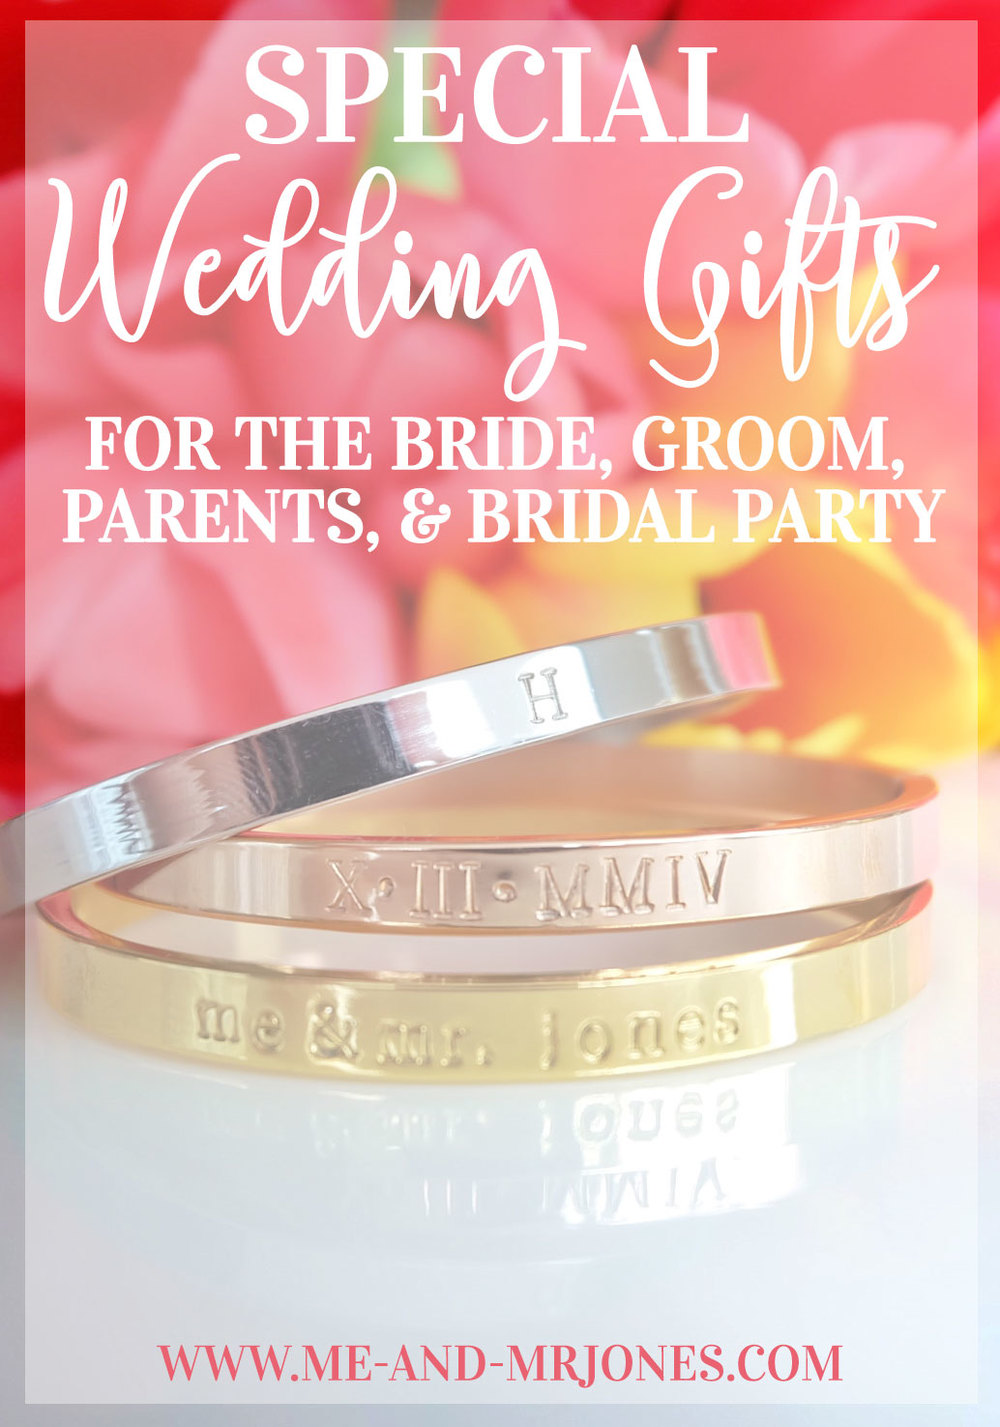 special wedding gifts for the bride groom parents and bridal party